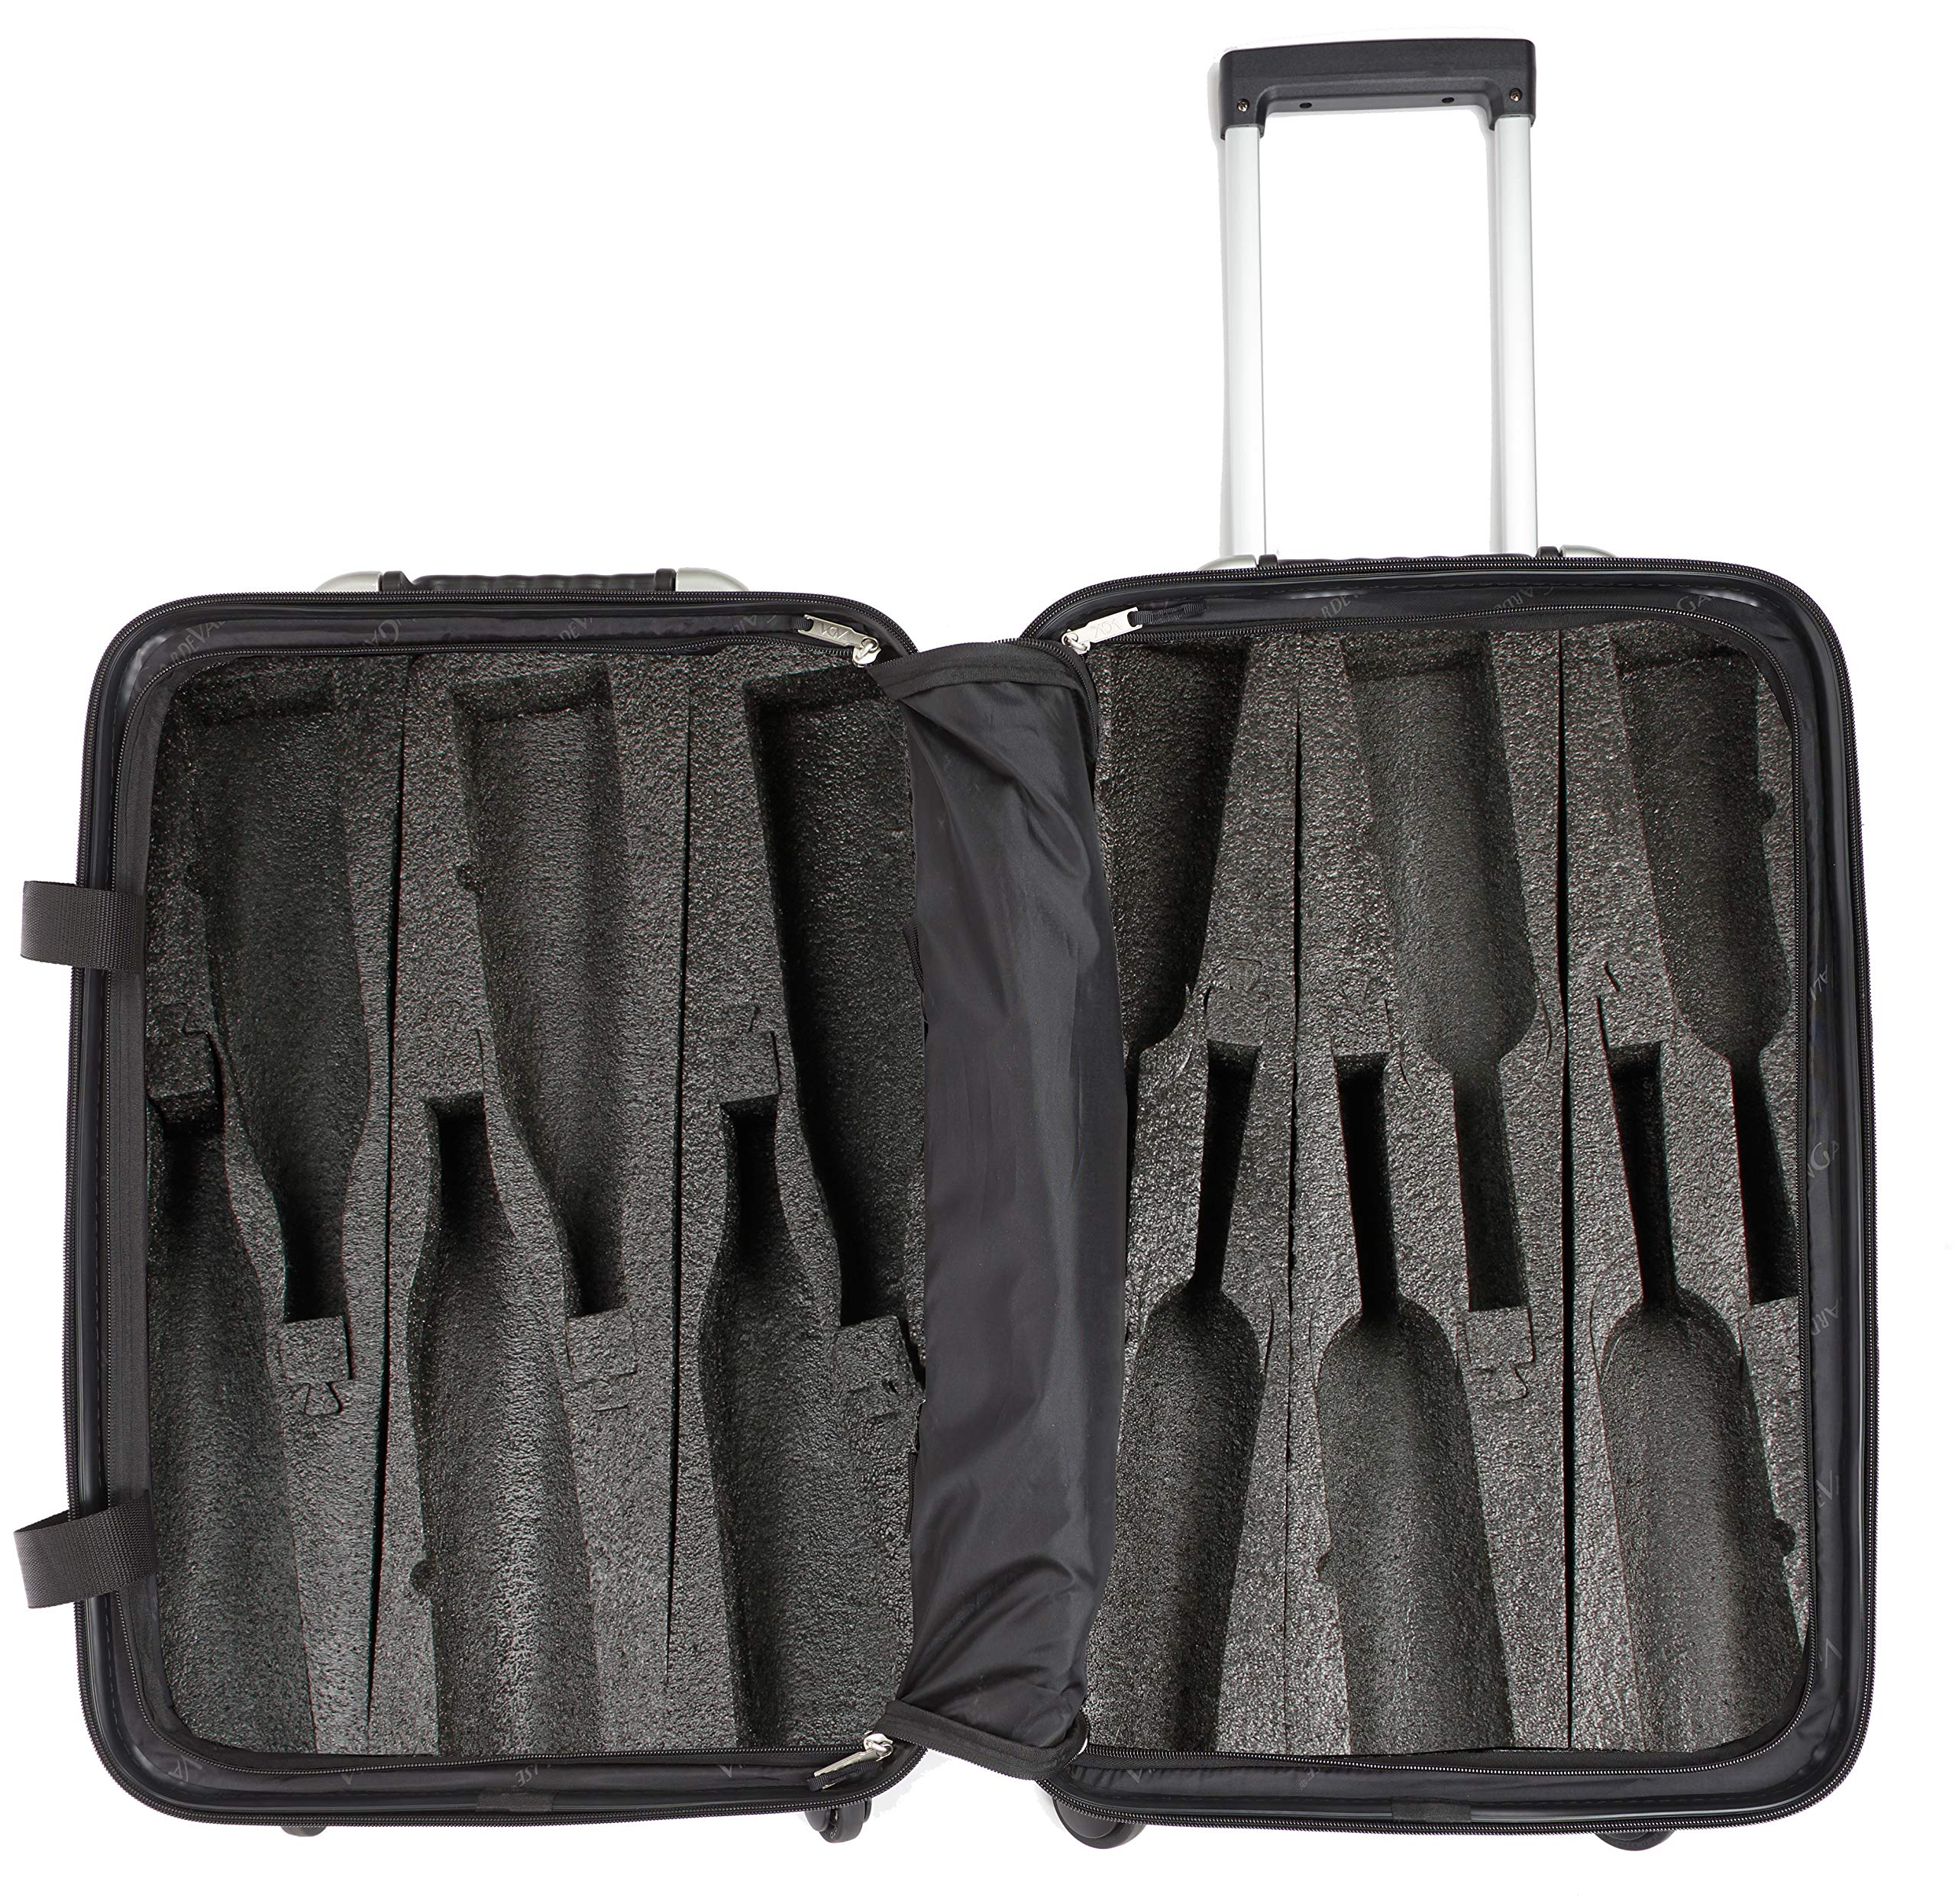 VinGardeValise - Up to 12 Bottles & All Purpose Wine Travel Suitcase (Black) by VinGardeValise (Image #1)